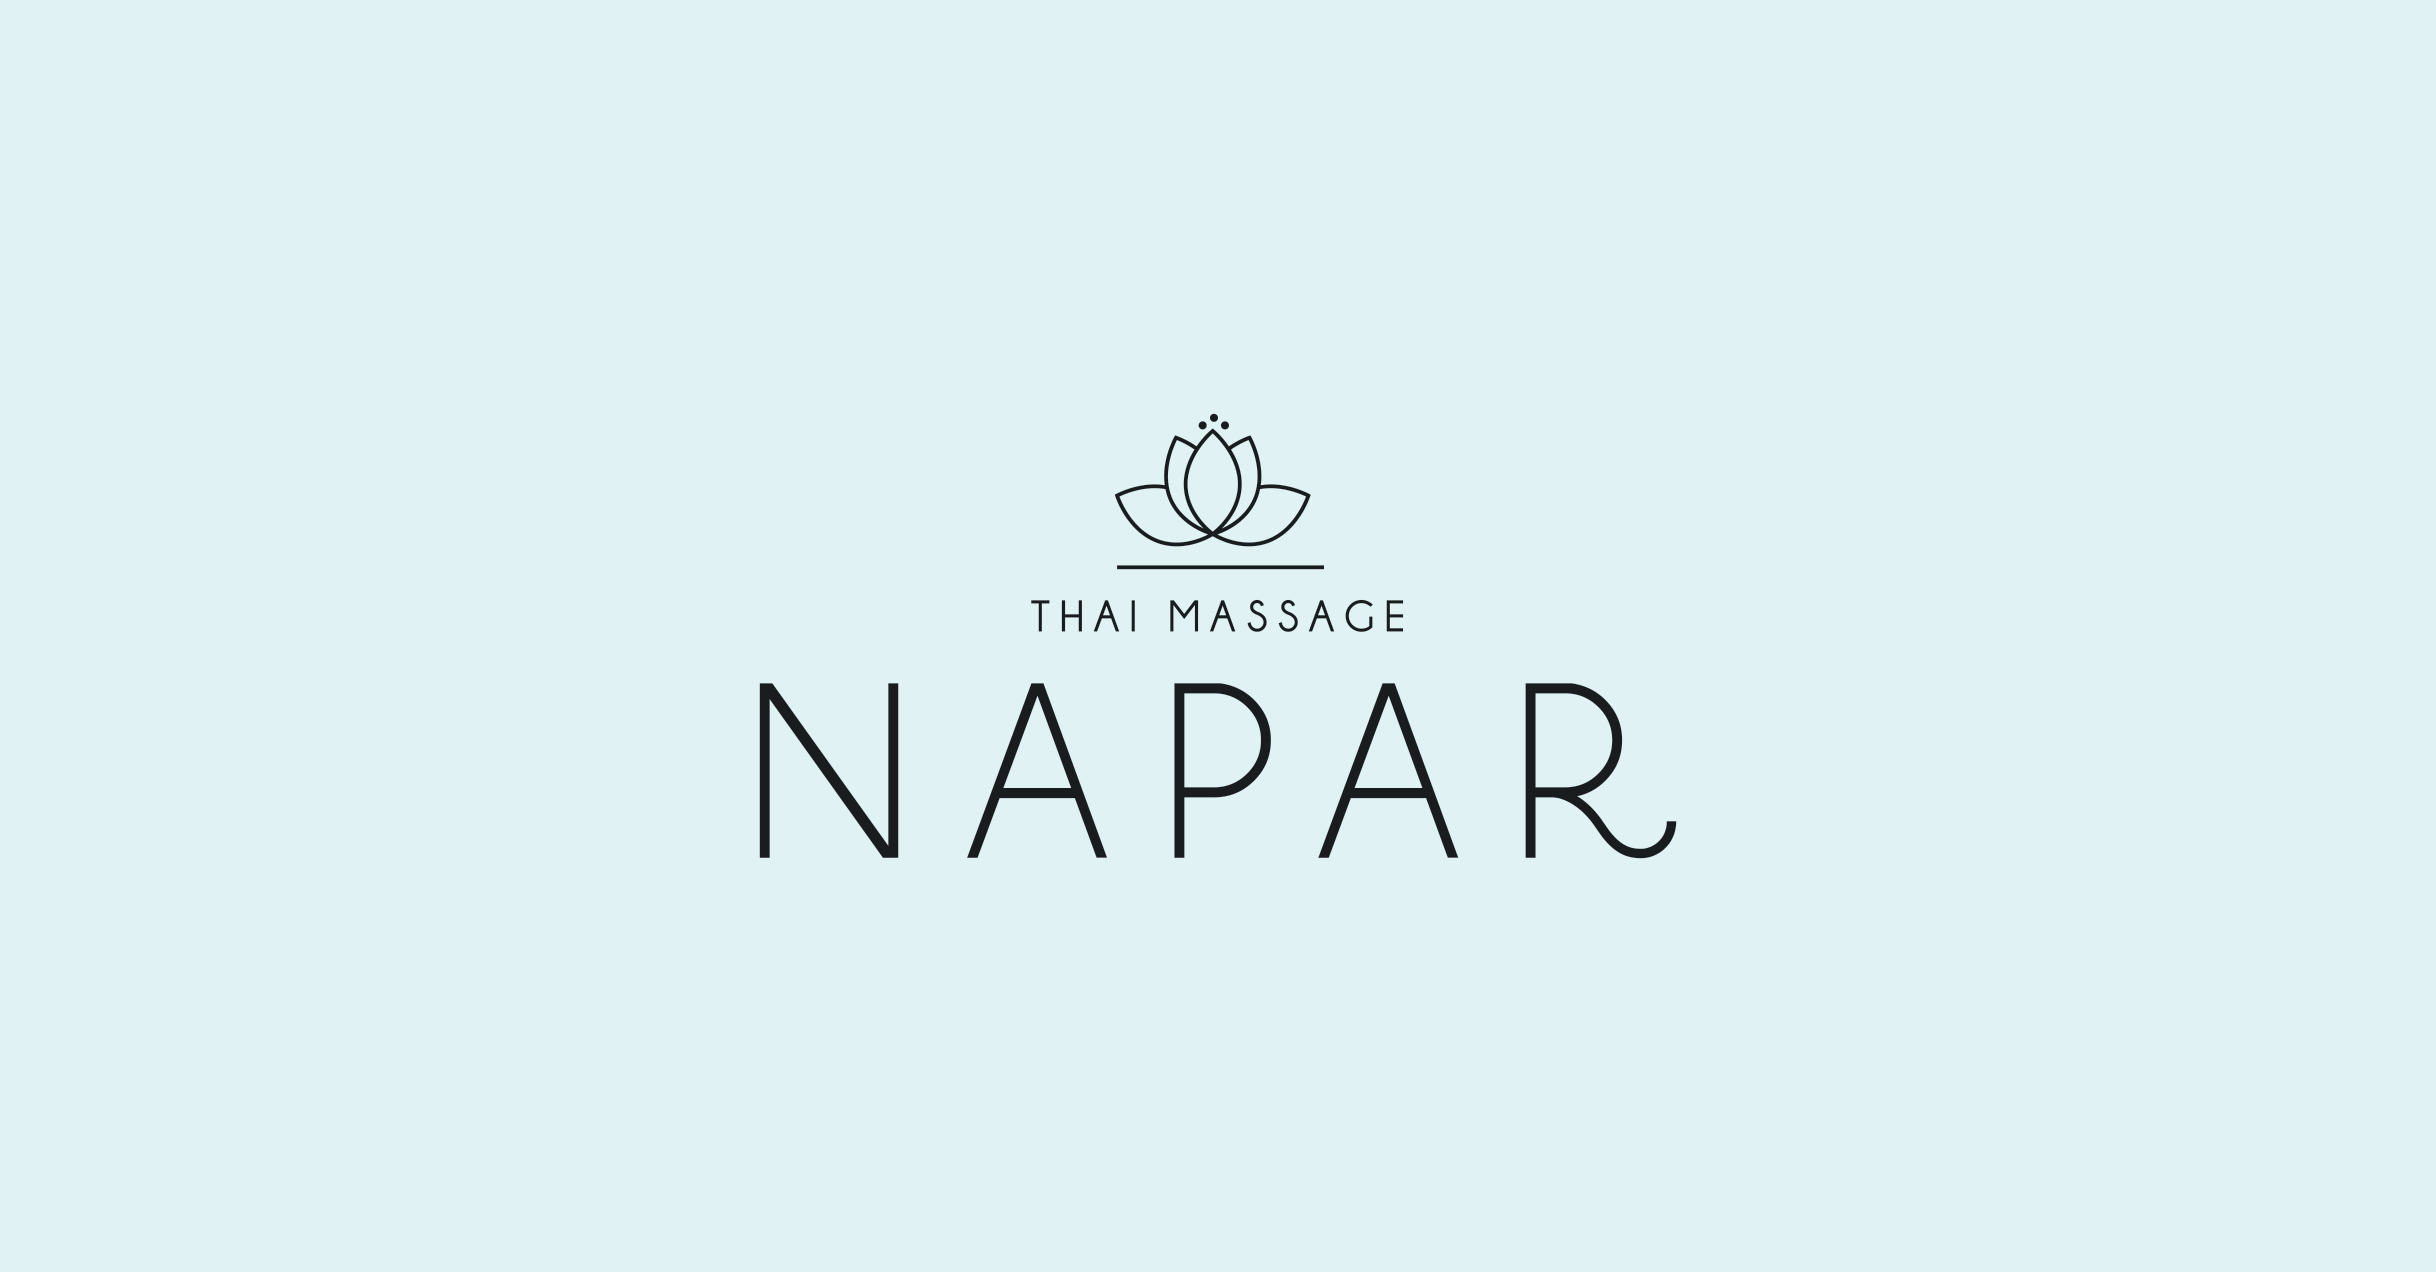 napar_thai_massage_logo_design_x